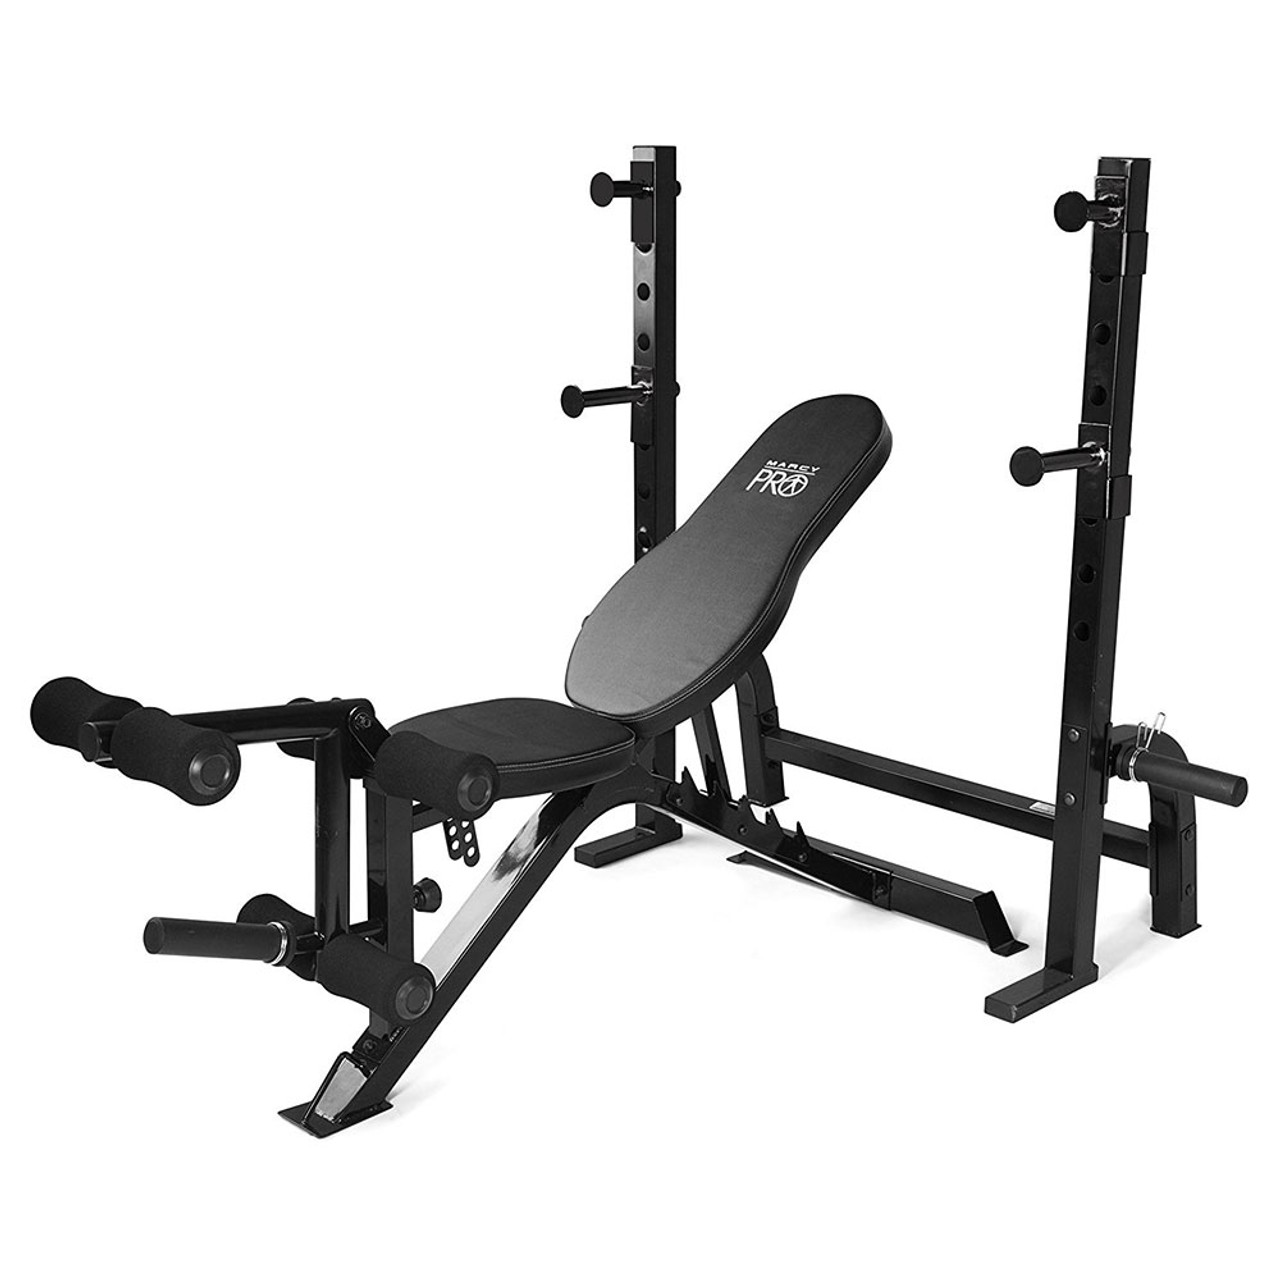 Marcy Olympic Weight Bench Pm 70210 High Quality Heavy